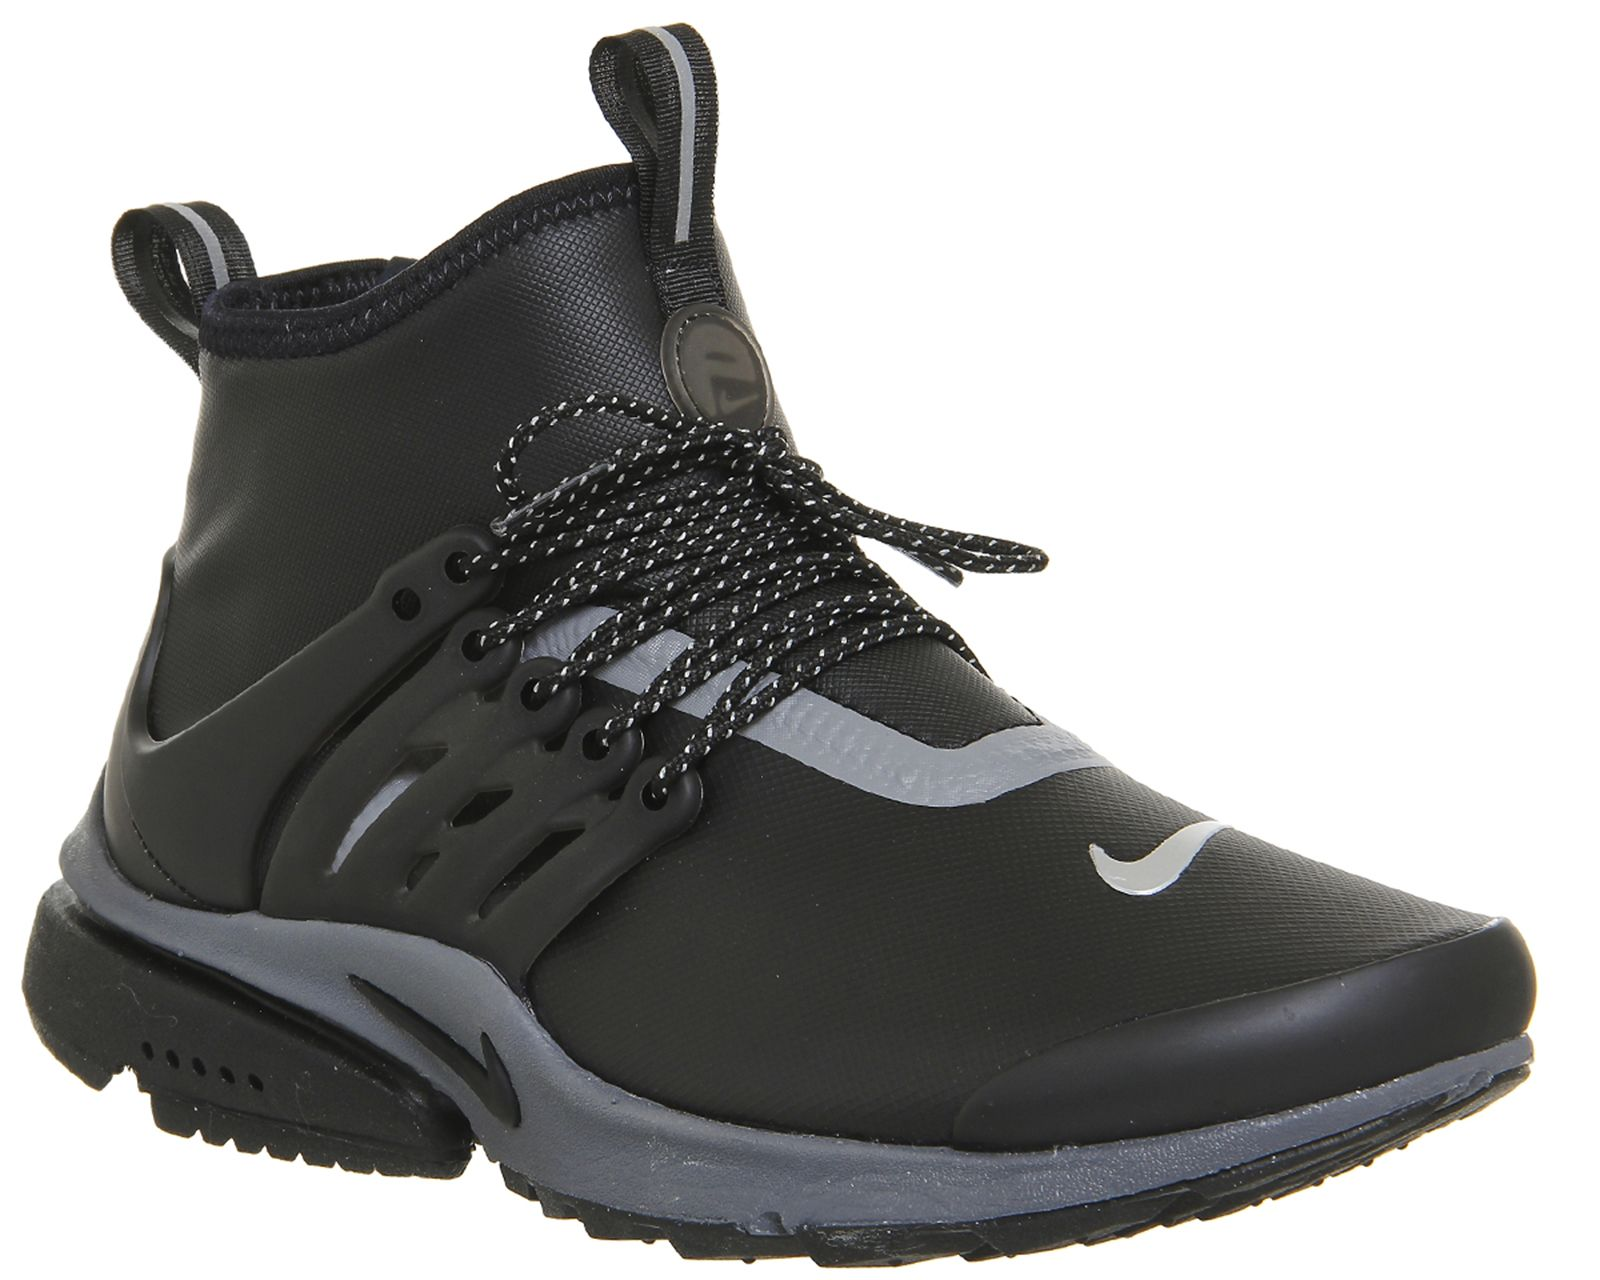 nike air presto mid utility black black reflect silver. Black Bedroom Furniture Sets. Home Design Ideas